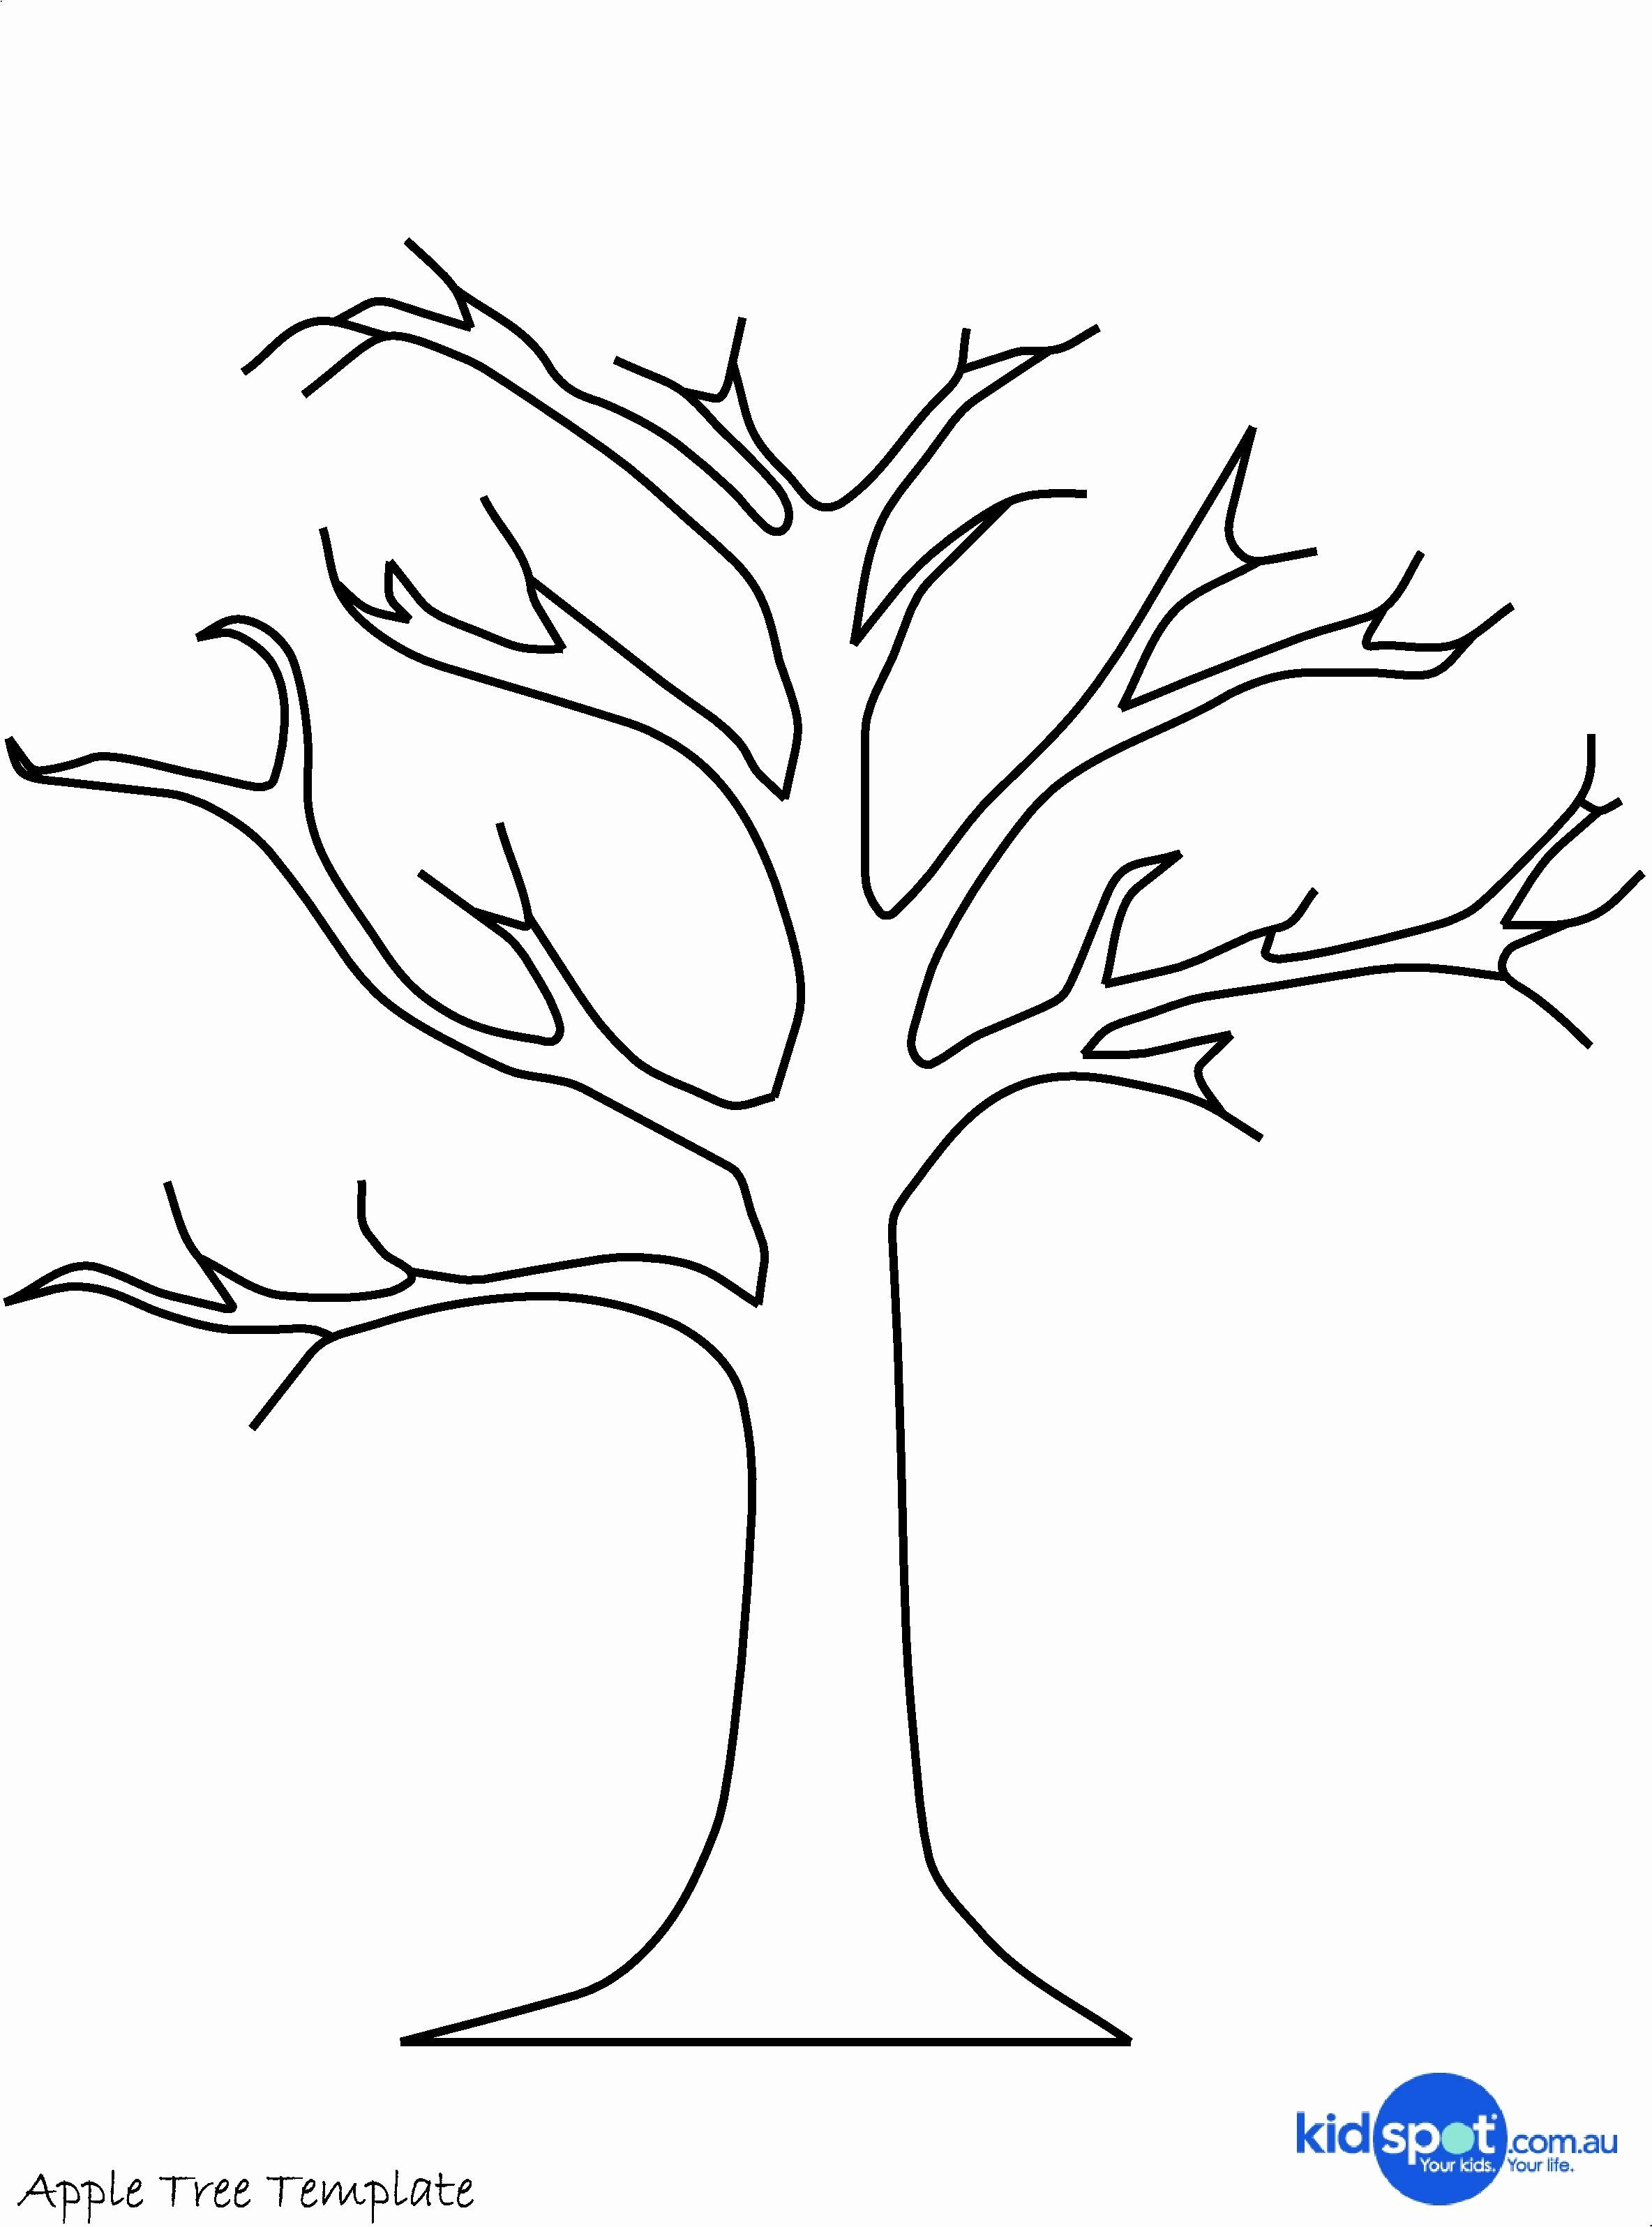 Tree Coloring Pages Pdf Ideas For Children Free Coloring Sheets Tree Coloring Page Leaf Coloring Page Tree Coloring Pages